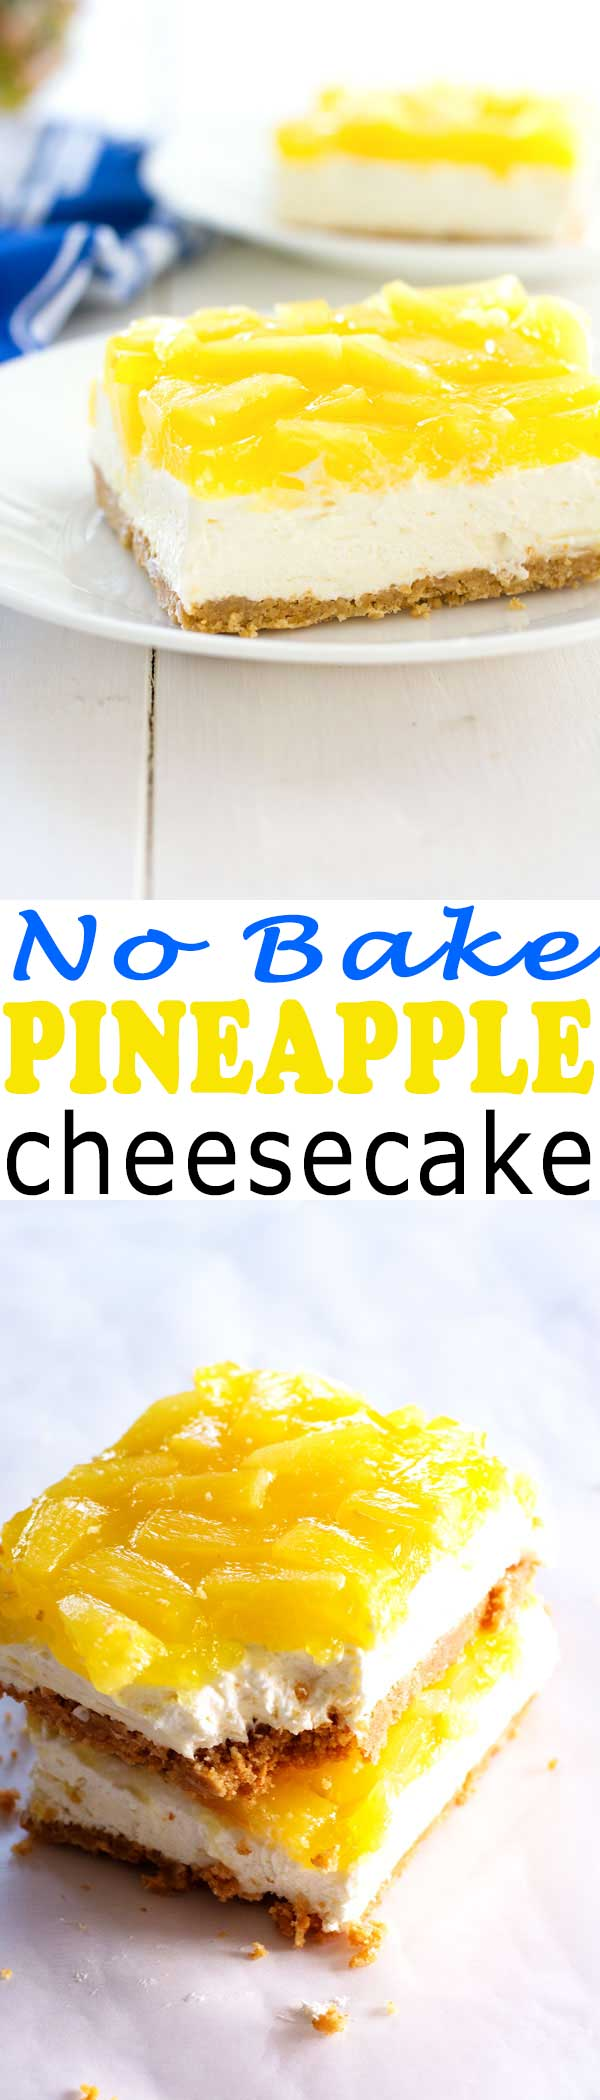 Easy No-Bake Pineapple Cheesecake Bars recipe - everyone will love these tropical dessert bars!